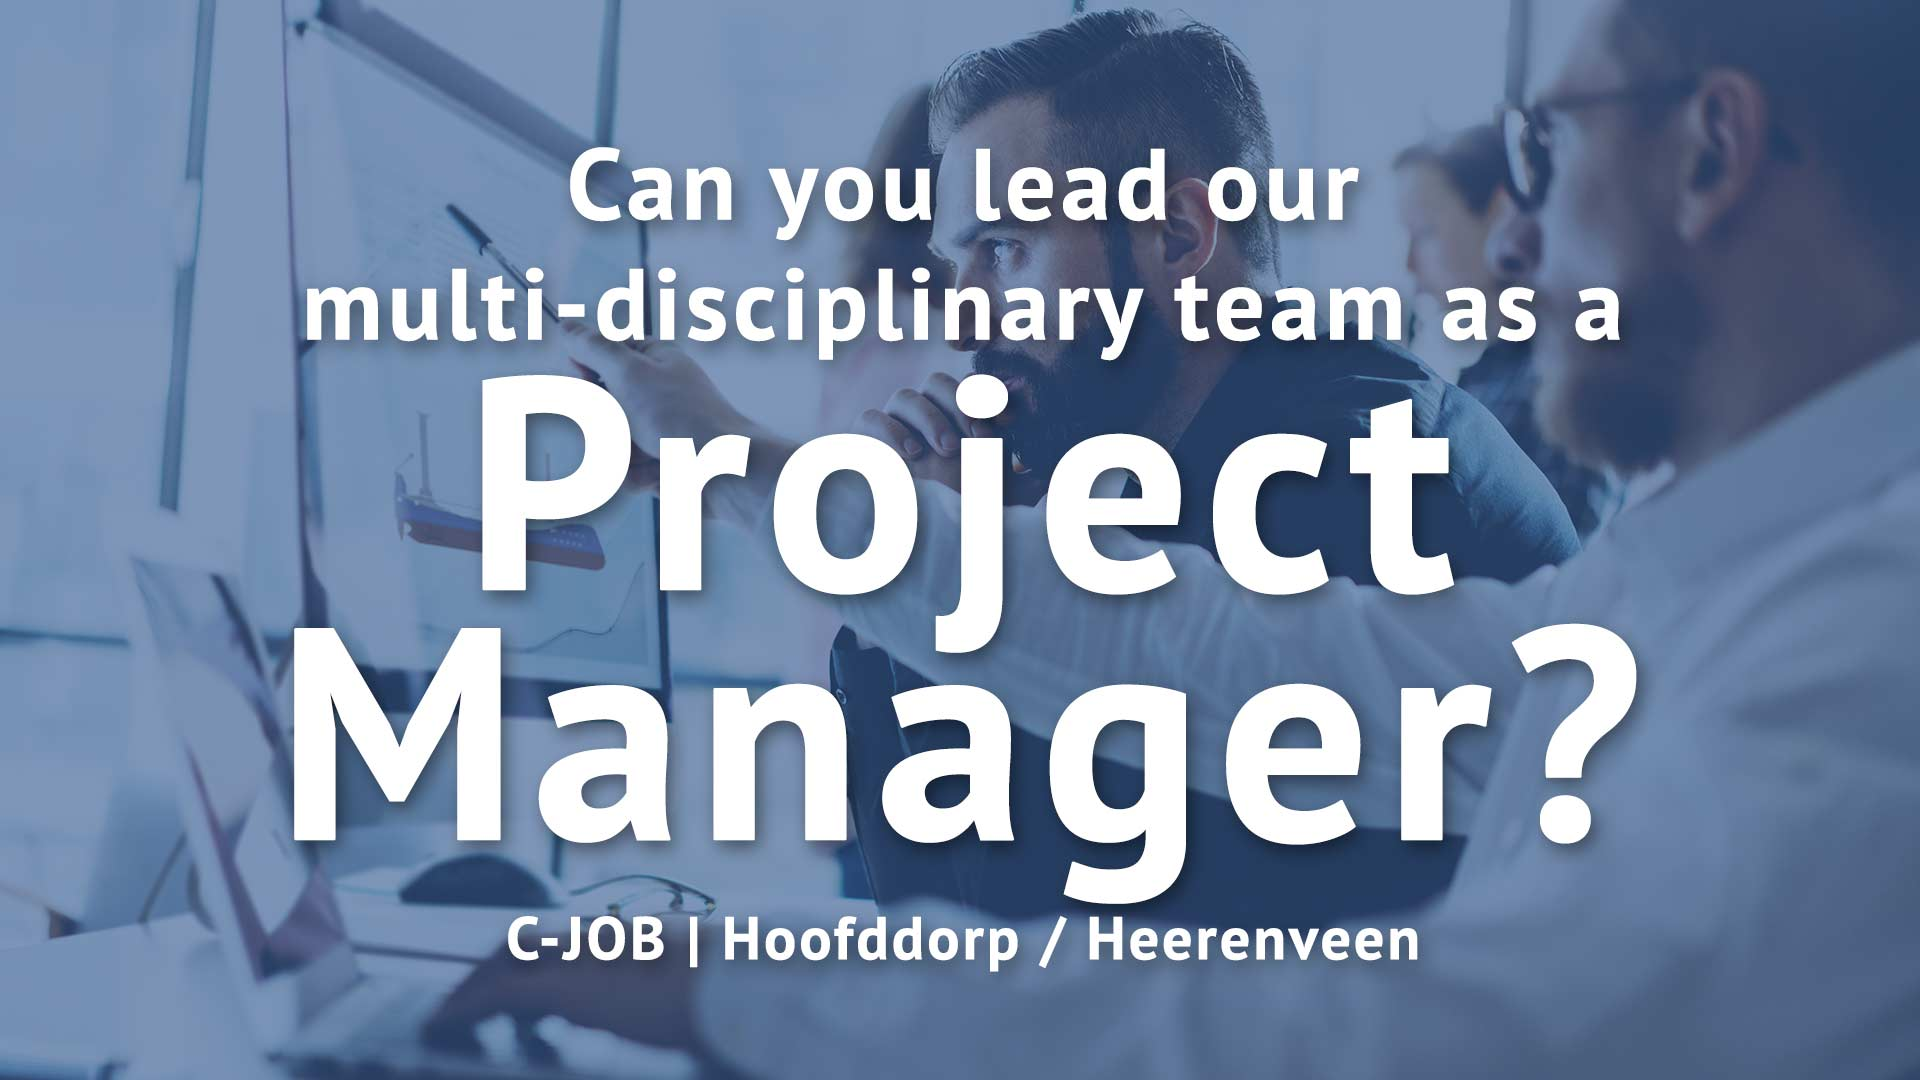 Project Manager - C-Job